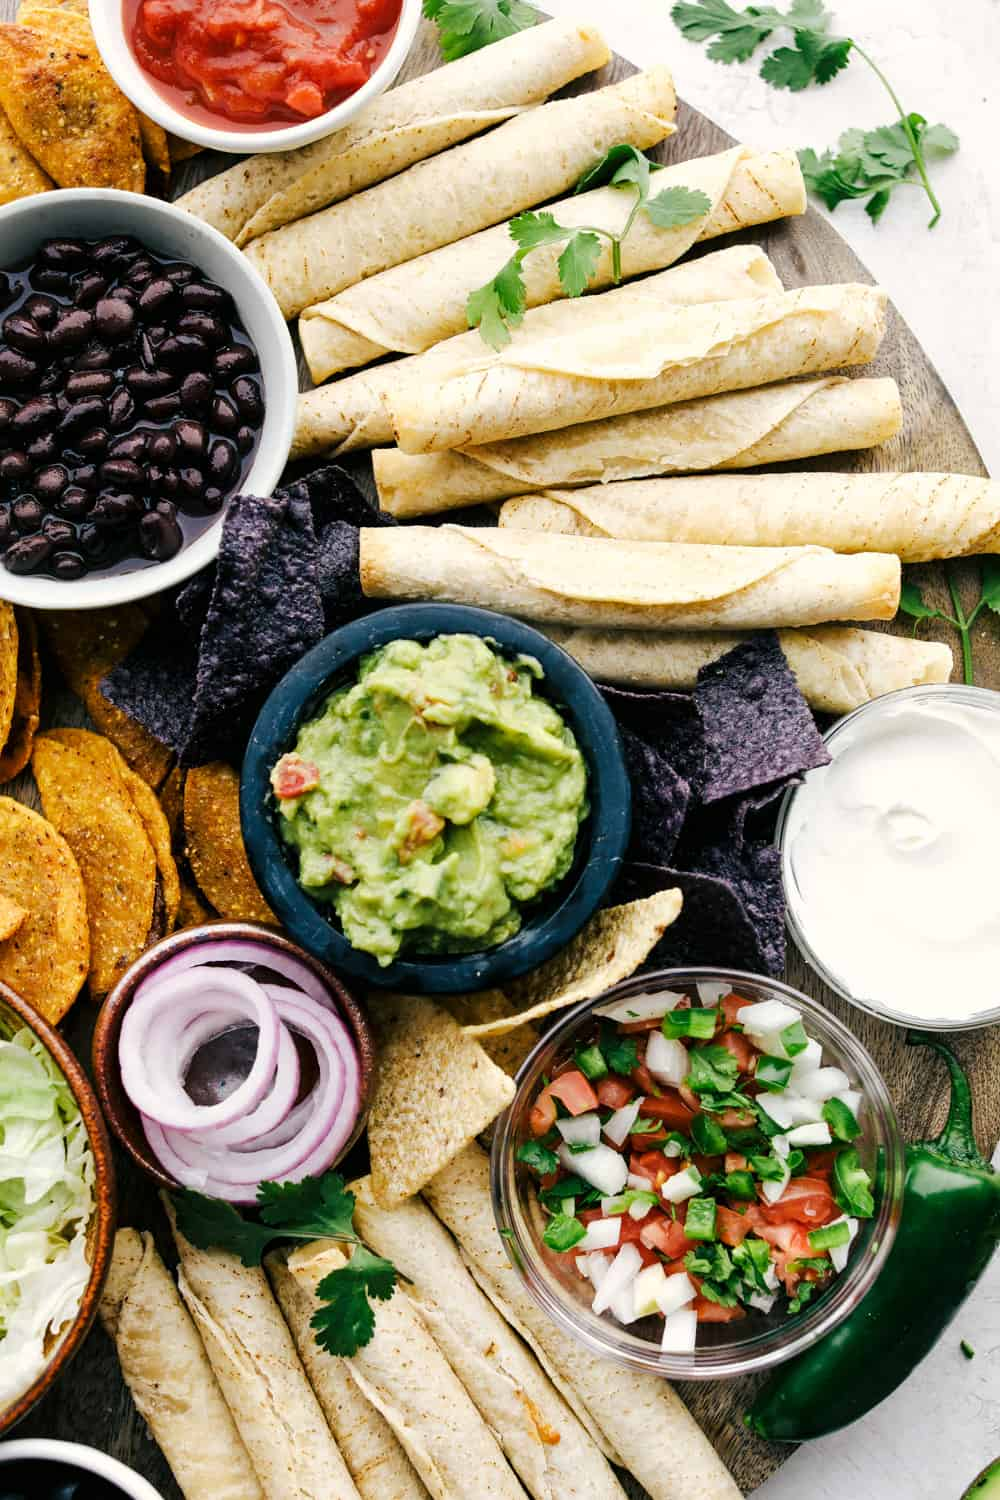 Taquitos on a board with bowls of dips, vegetables and chips all around.